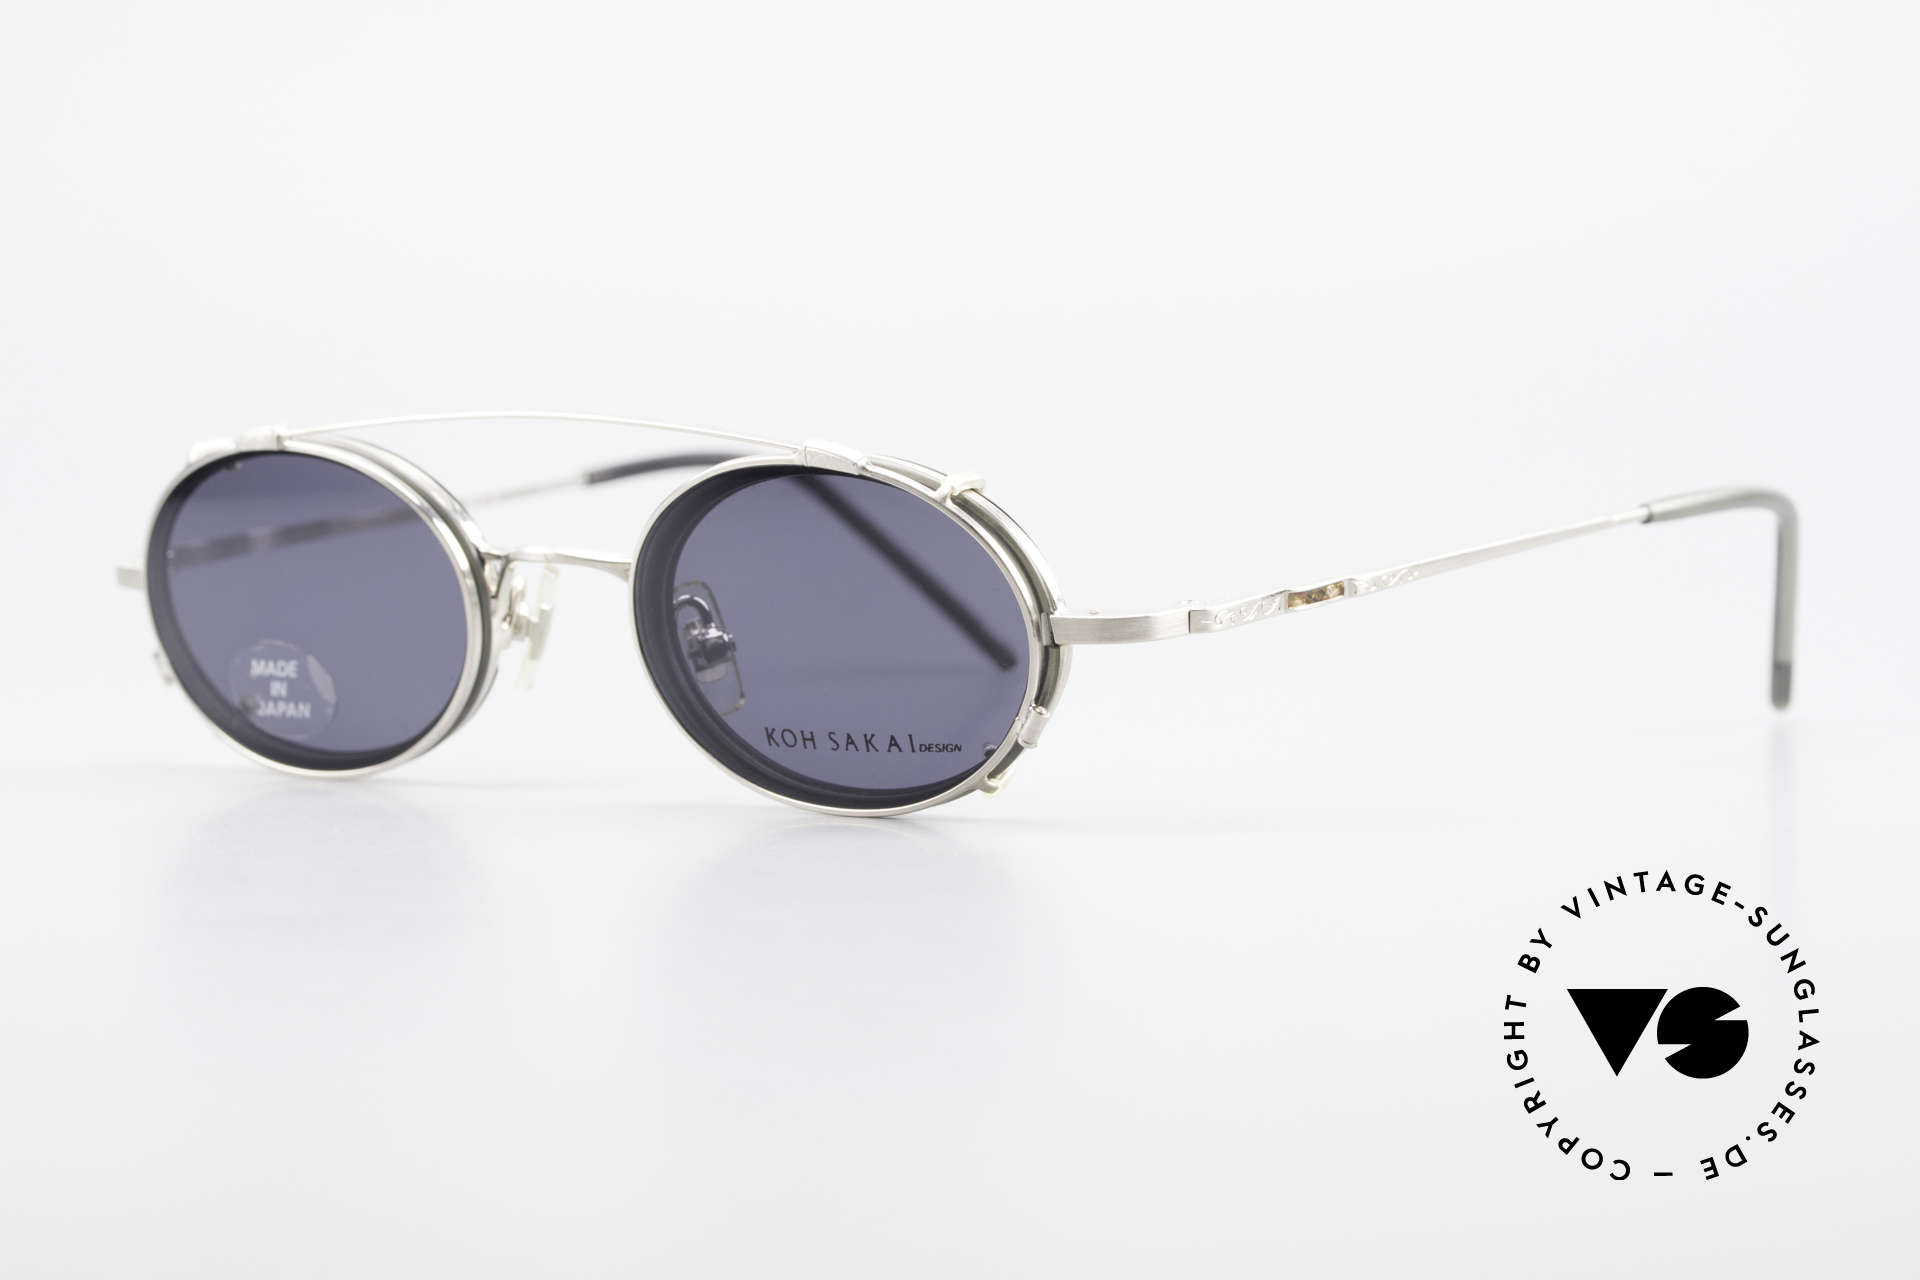 Koh Sakai KS9831 Oval 90's Frame Made in Japan, designed in Los Angeles and produced in Sabae (Japan), Made for Men